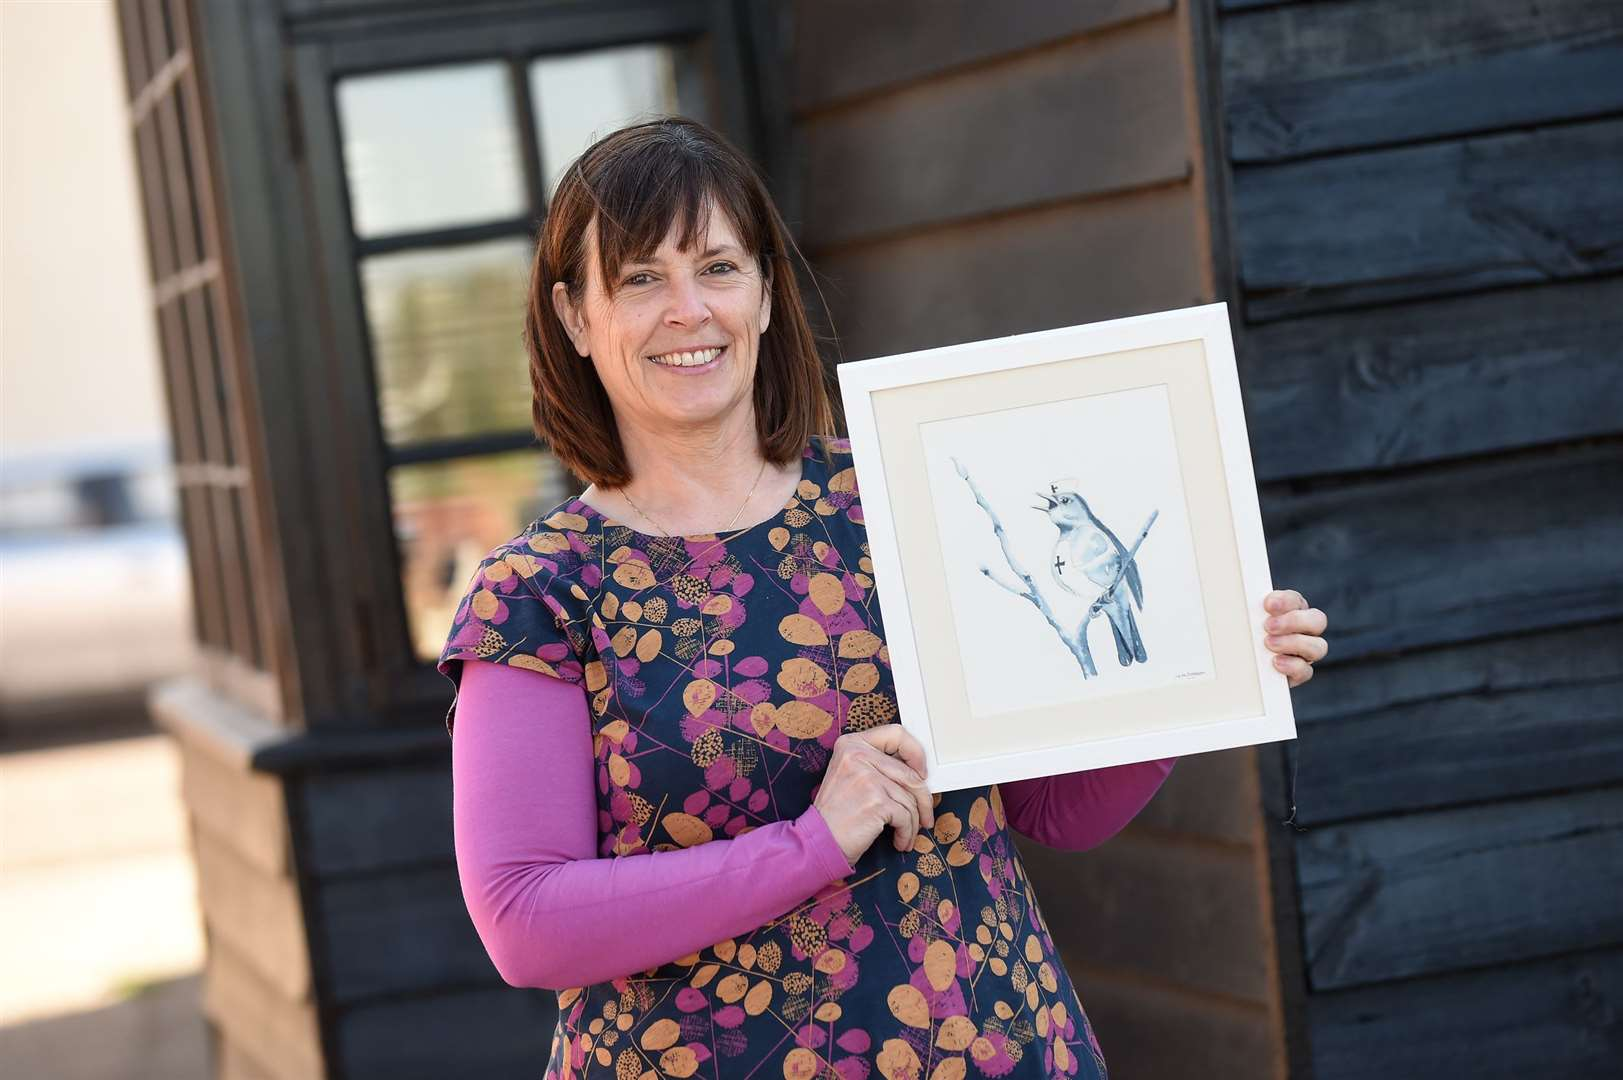 Physiotherapist Julie Iveson, has had to shut her clinic in Long Melford due to Covid 19 lock down. She has since created an artistic tribute to the NHS and Nightingale hospitals in recognition of medical workers...PICTURE: Mecha Morton .... (33837377)